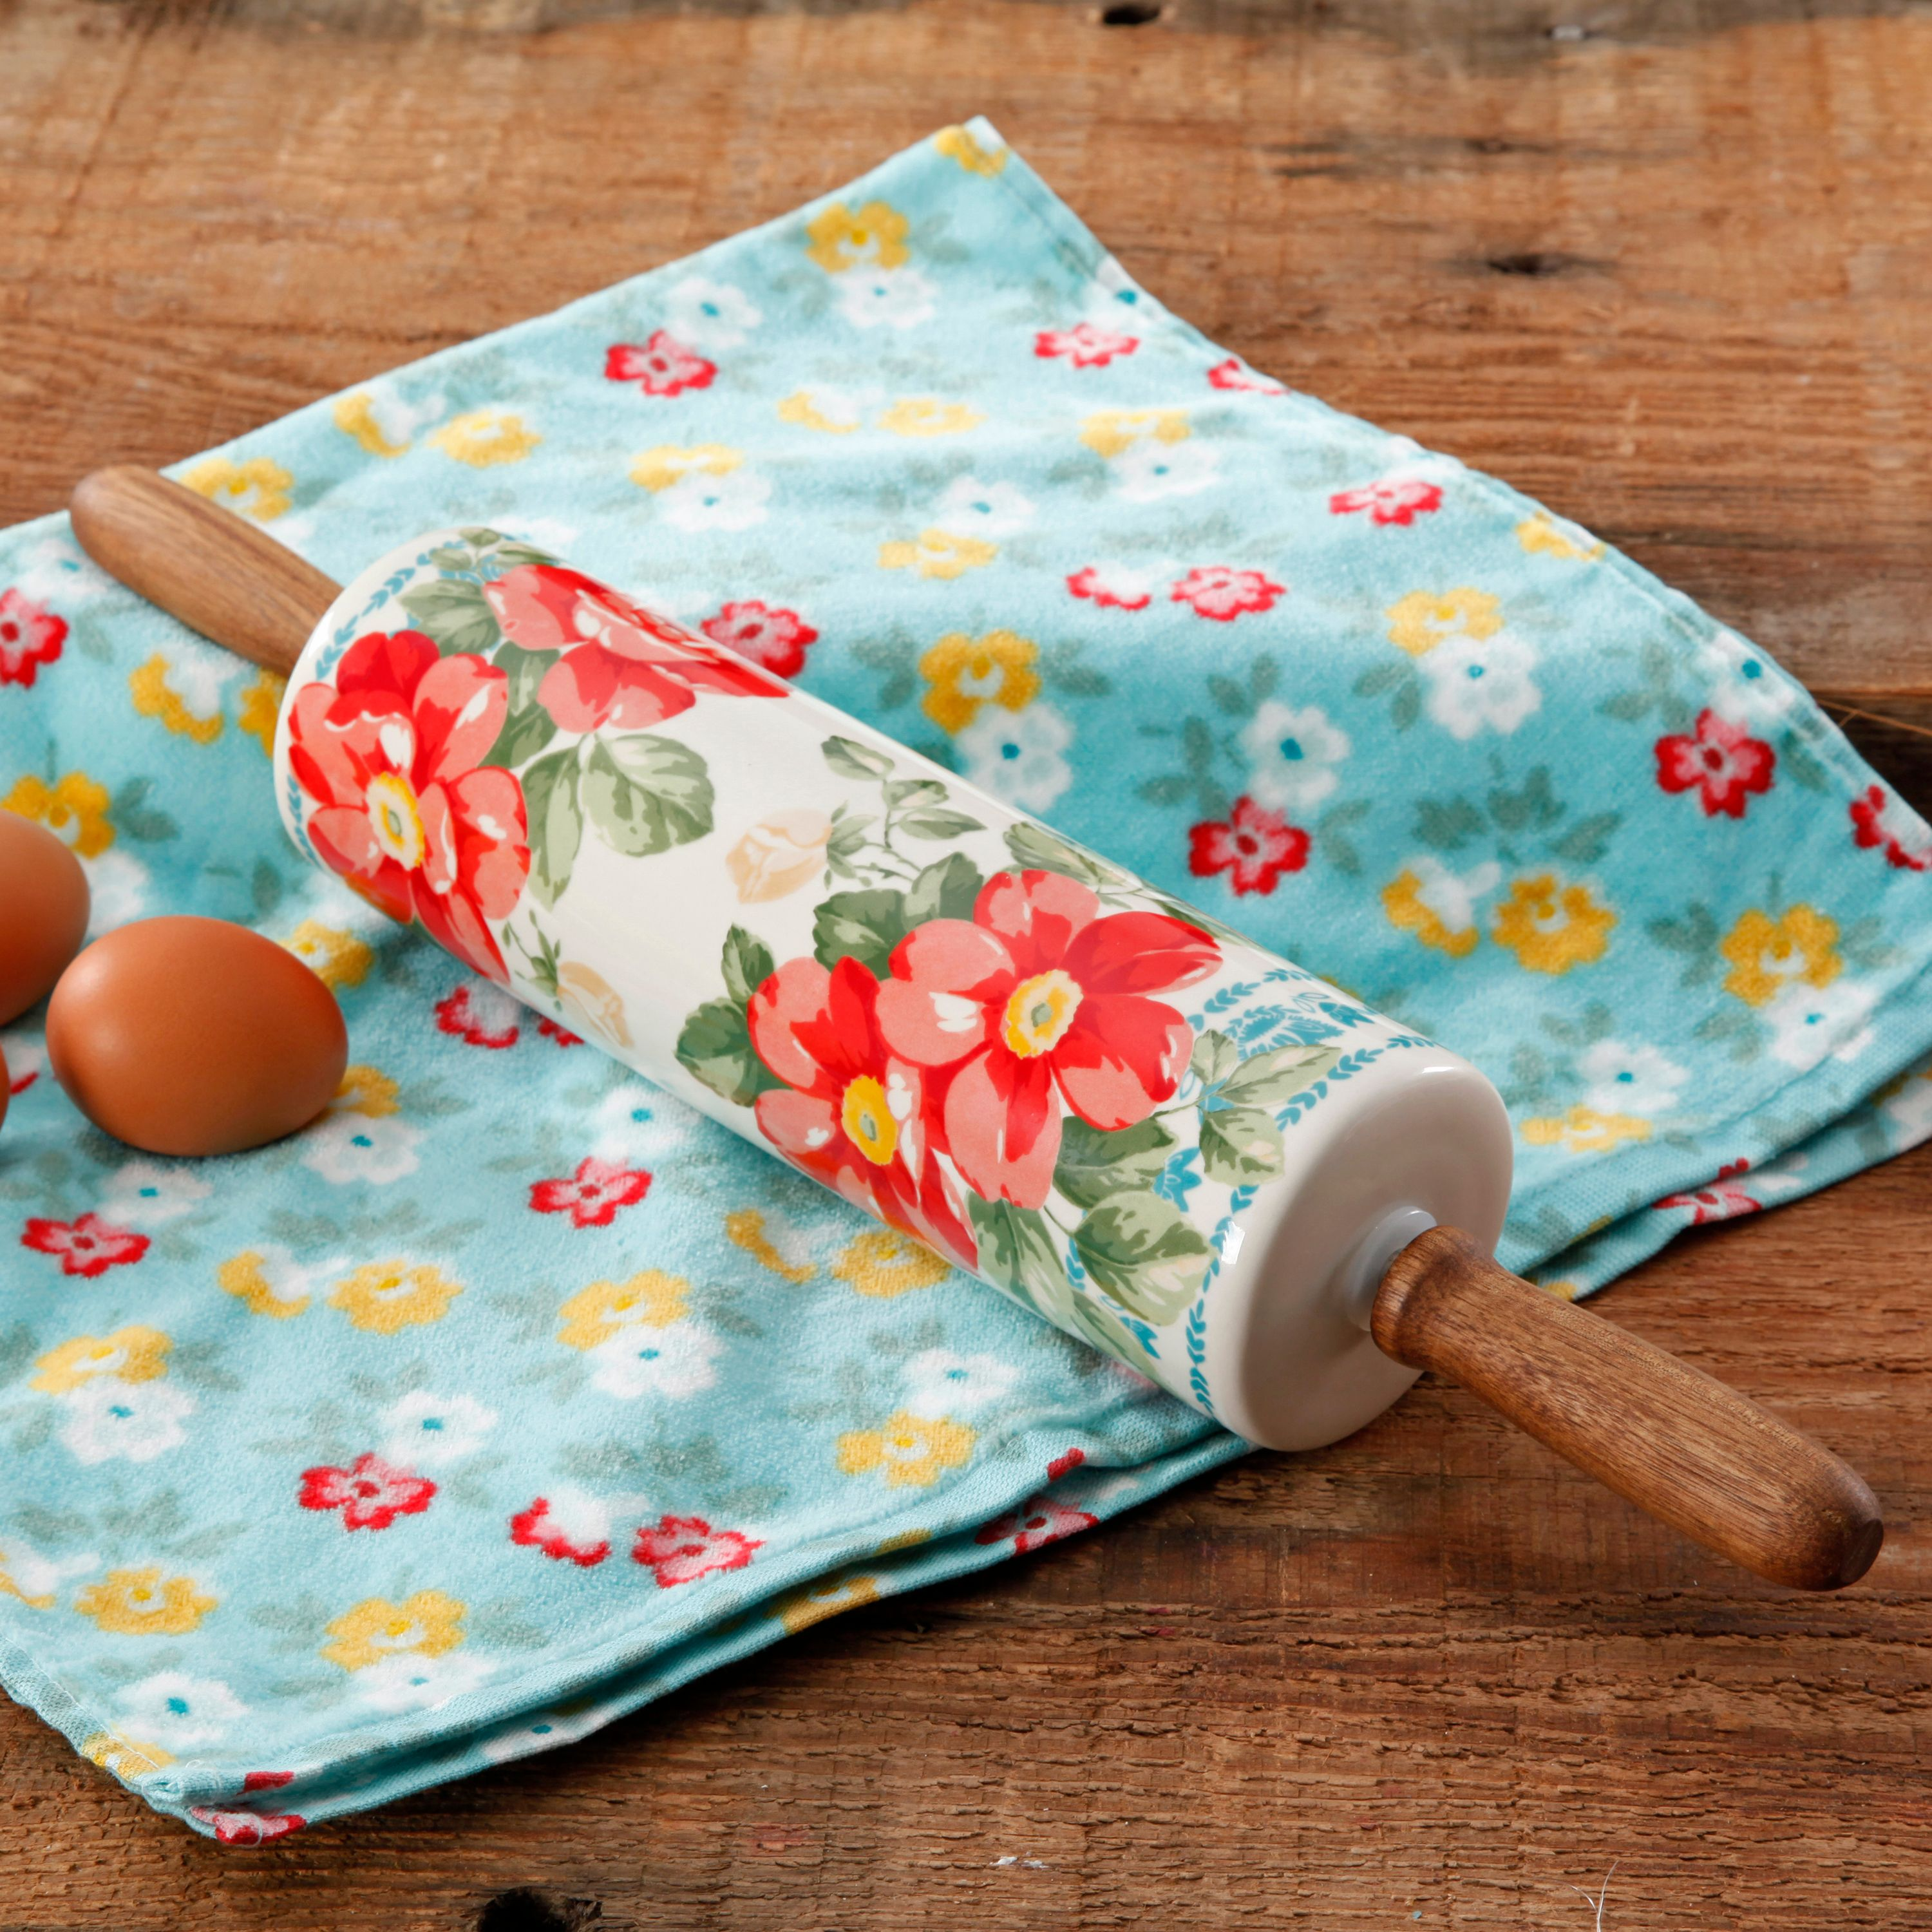 Pioneer Woman Rolling Pin, Floral Themed